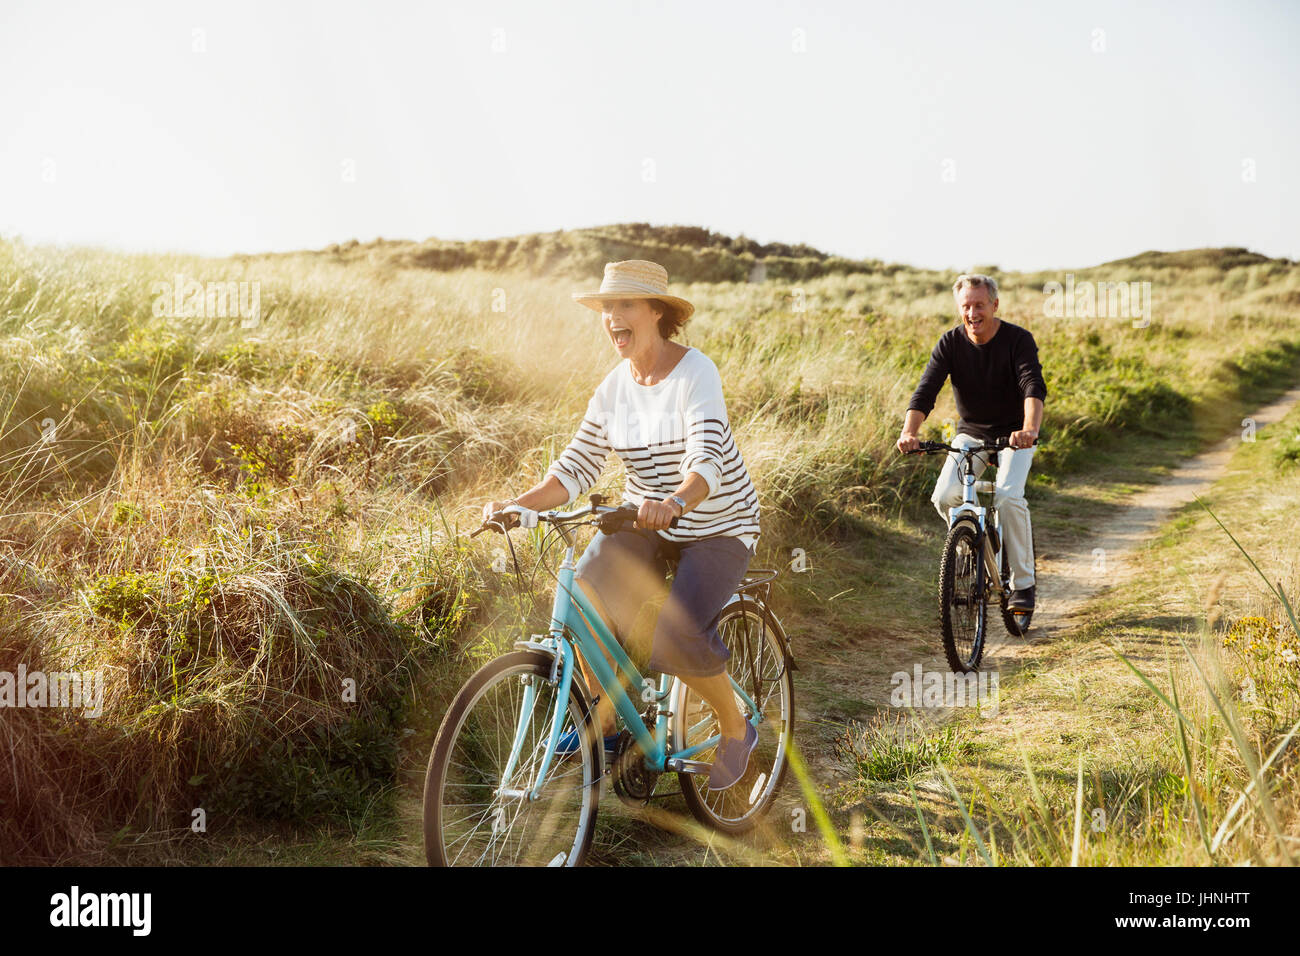 Playful mature couple riding bicycles on sunny beach grass path - Stock Image